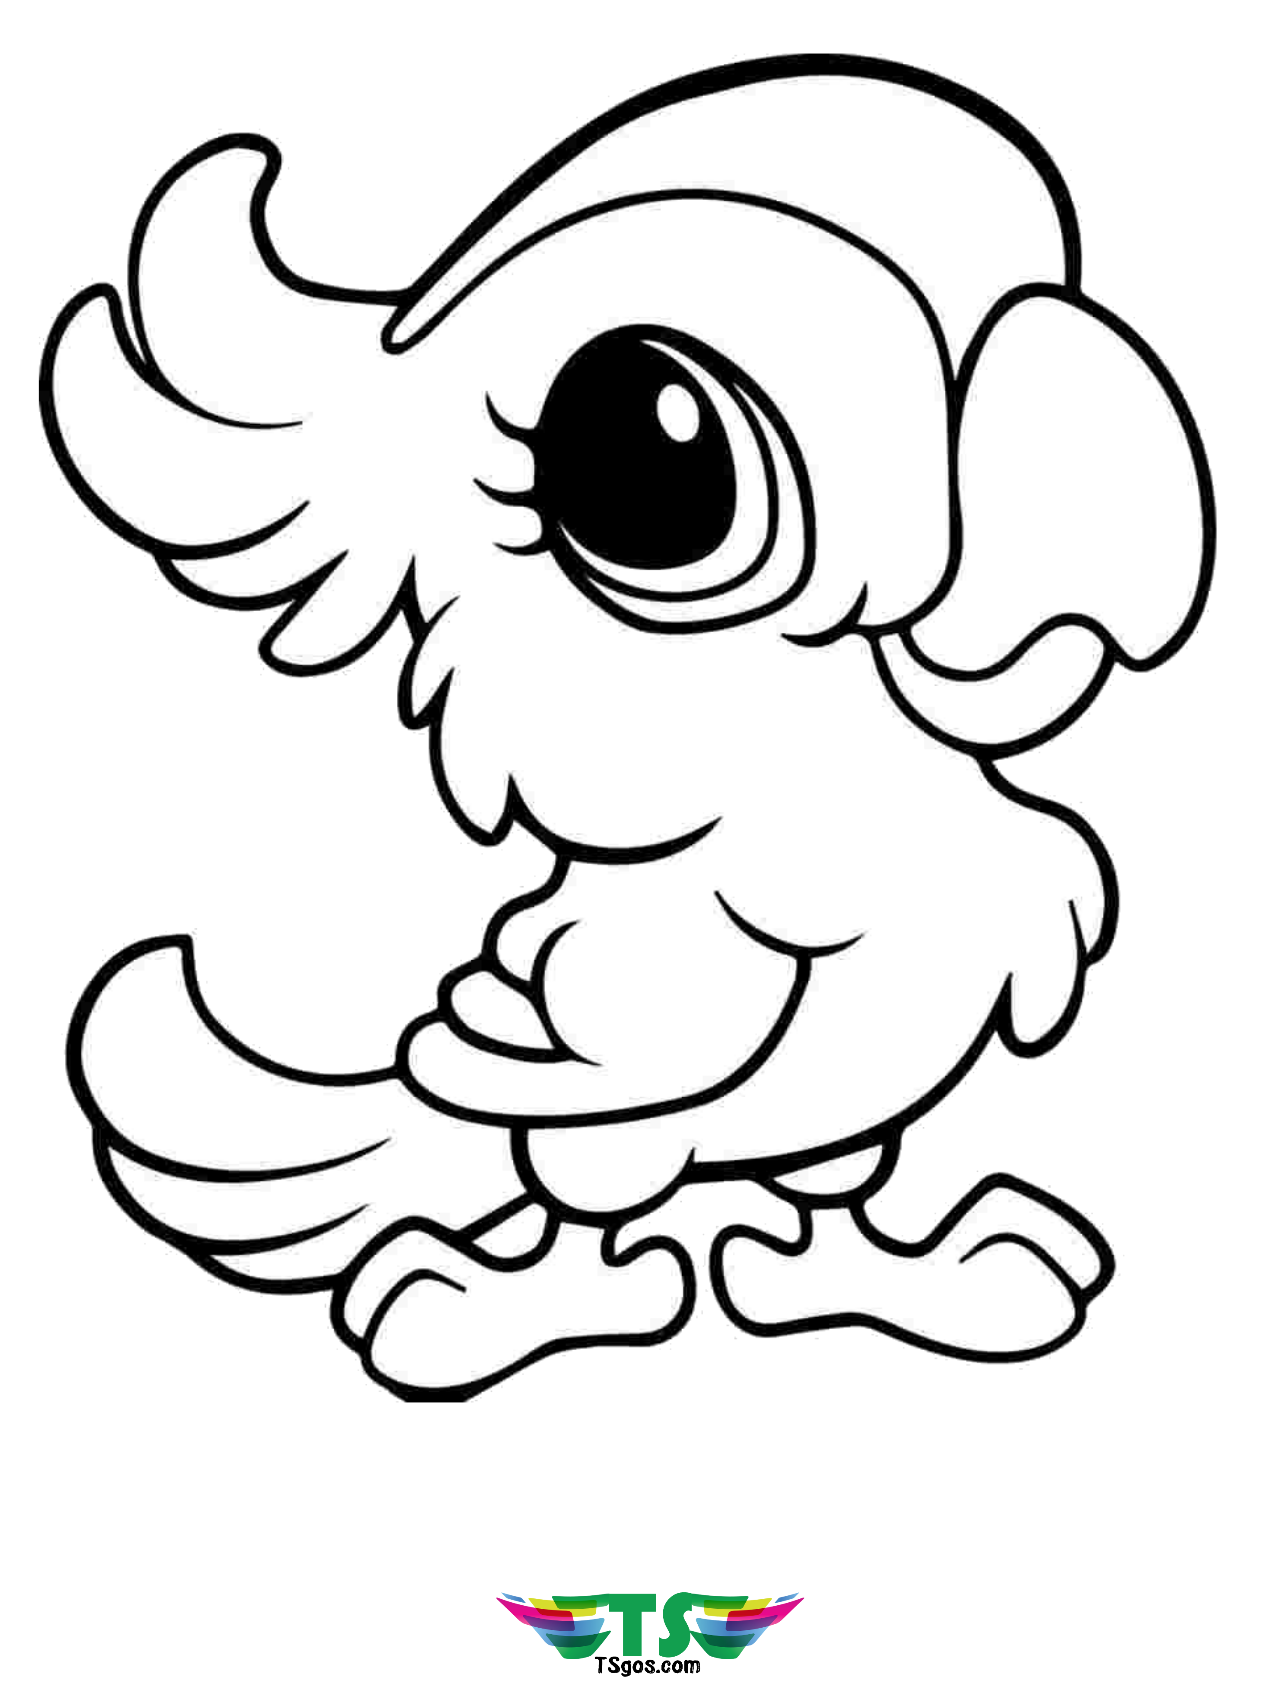 bird coloring images bird coloring pages coloring images bird